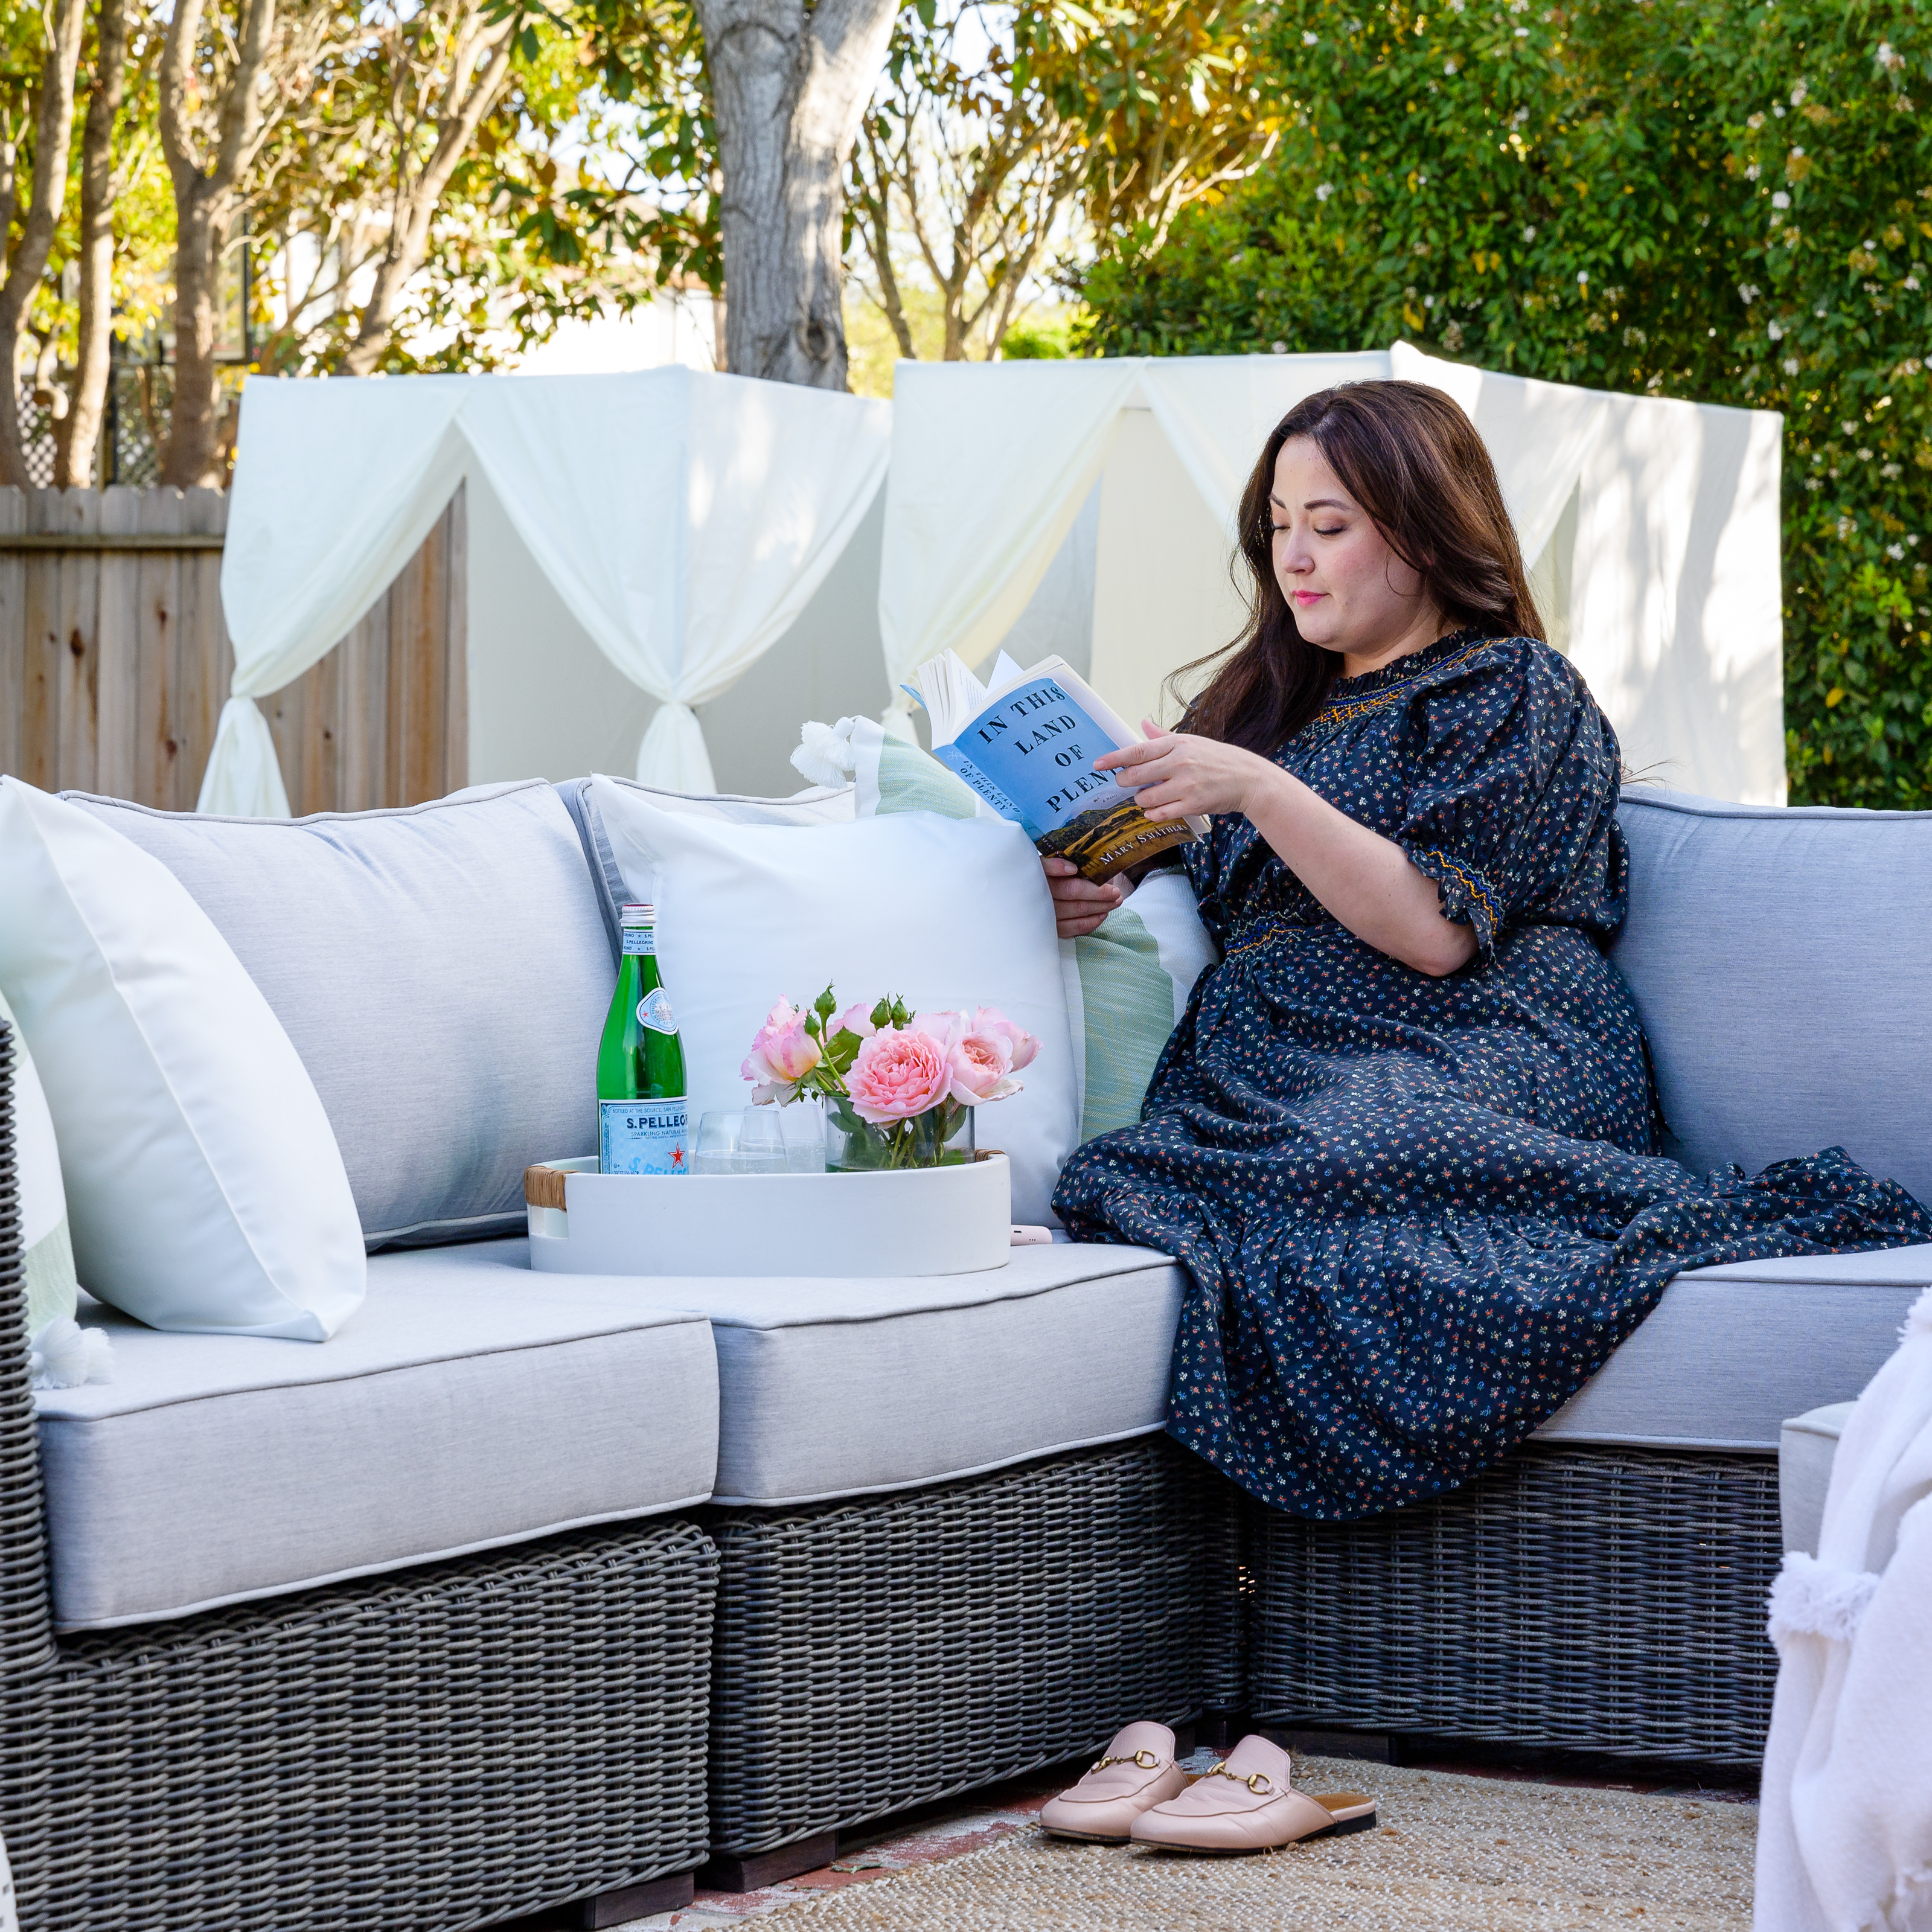 Outdoor Living Room by popular Monterey life and style blog, Haute Beauty Guide: image of a woman wearing a navy blue floral print maxi dress and sitting on a wicker outdoor Ajna Living sectional couch with grey cushions.